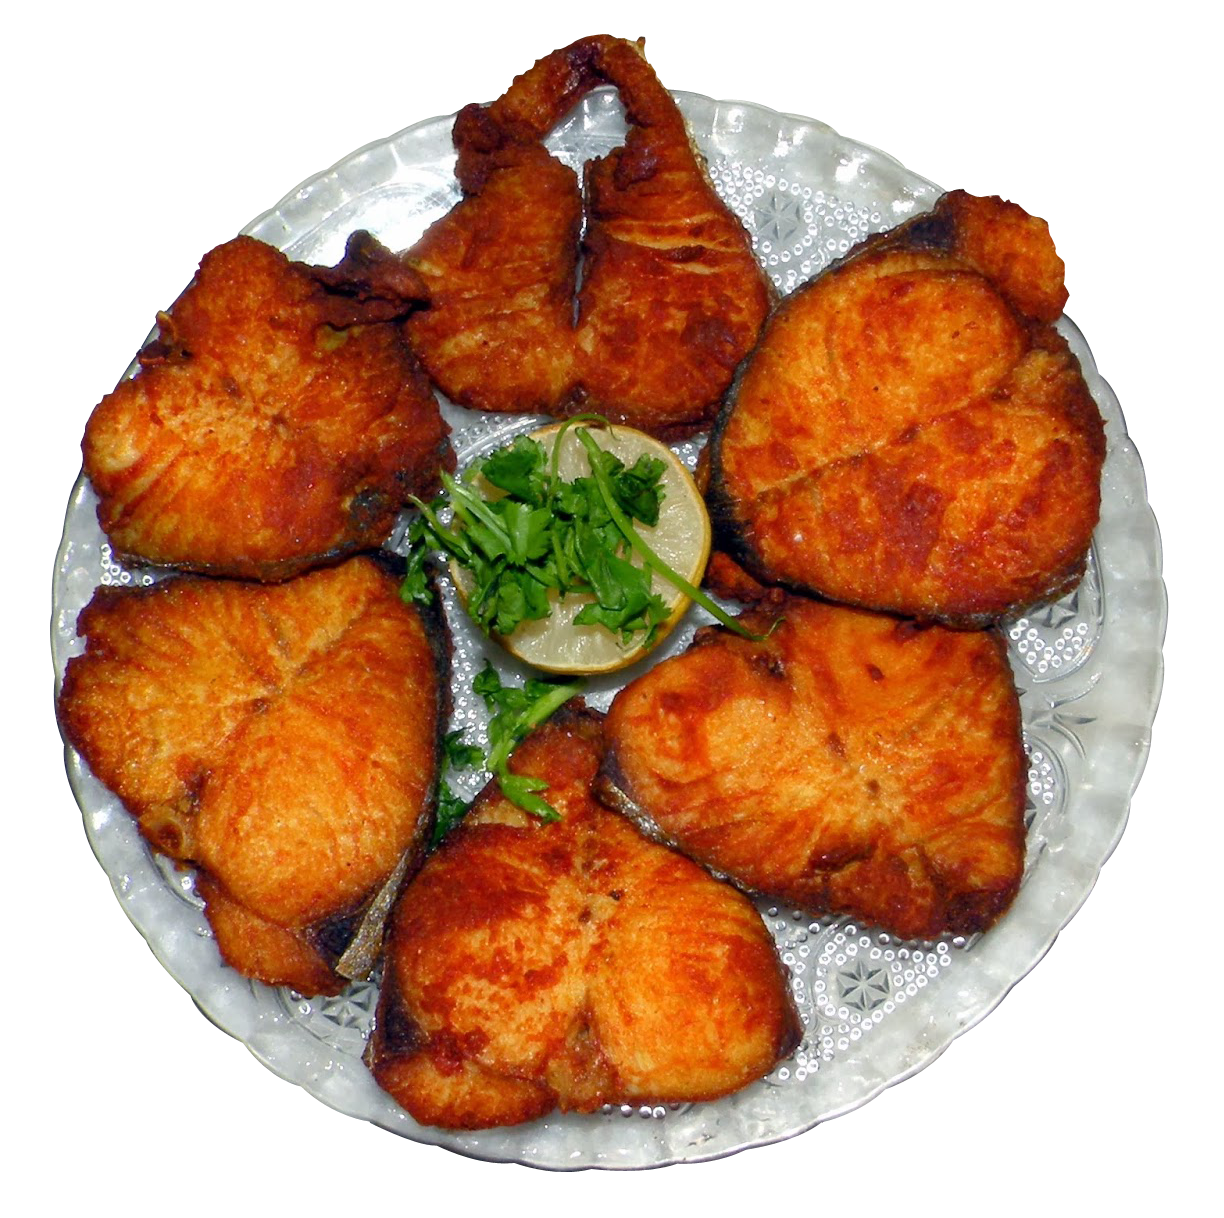 Fried Fish PNG Transparent Image - Fish Fry PNG HD